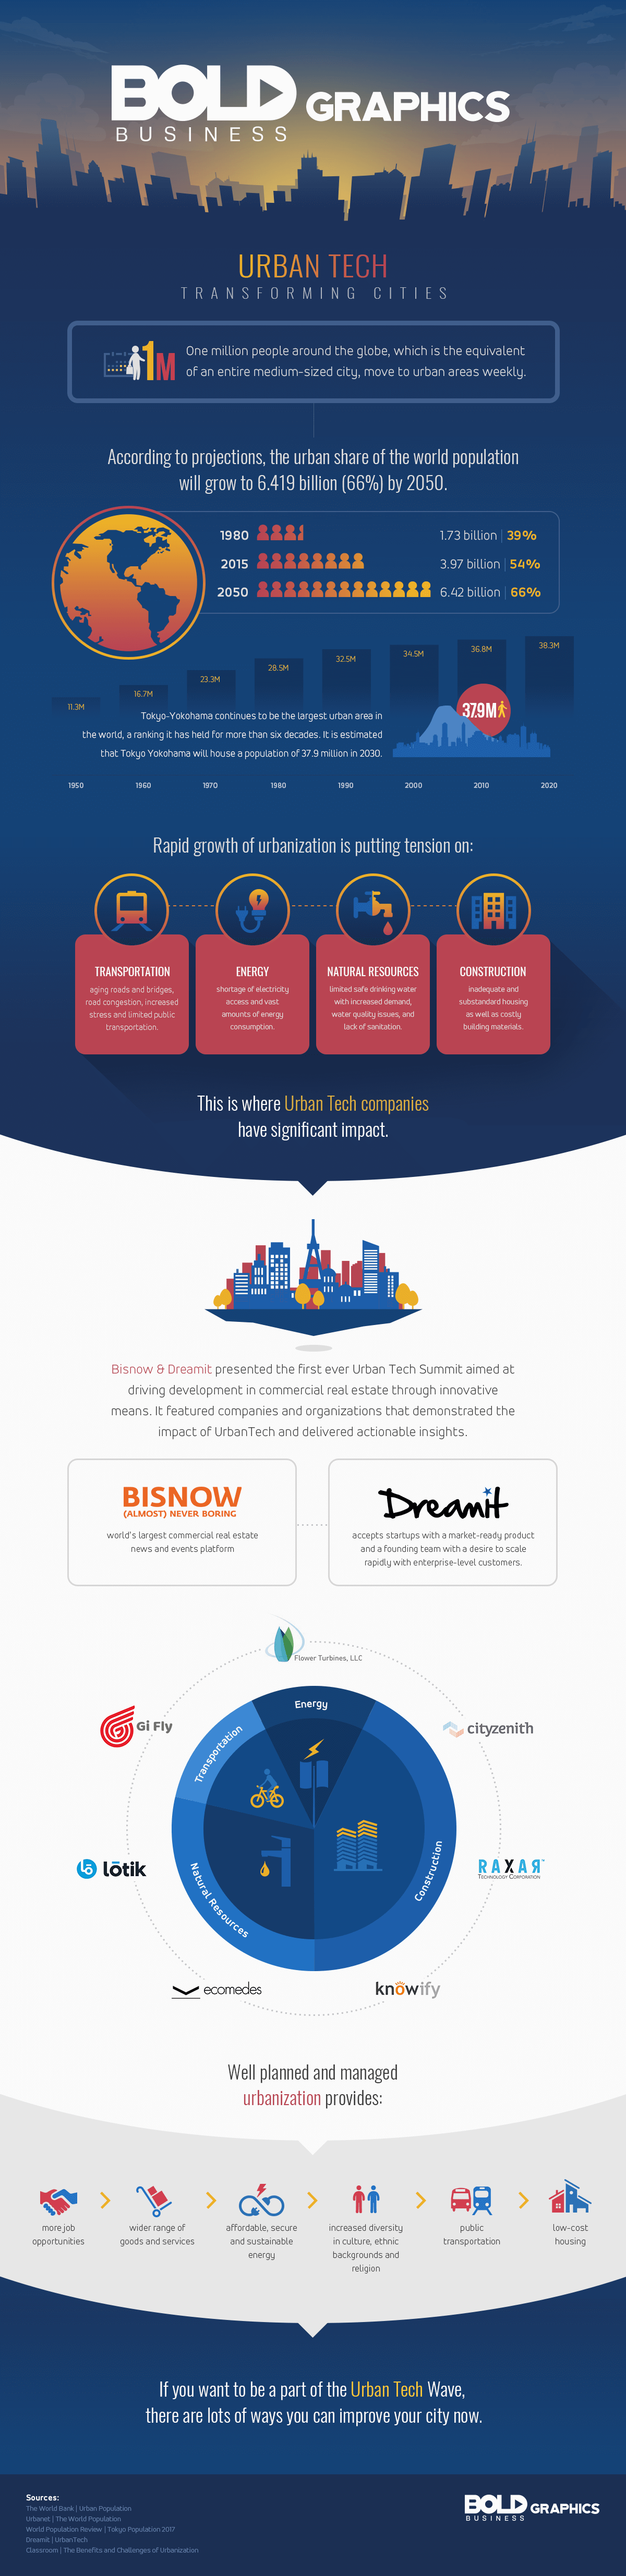 urban technology,urban technology project,urban tech startups,urban tech conference,urban population growth,urbanization growth,urban tech companies,urban tech infographic